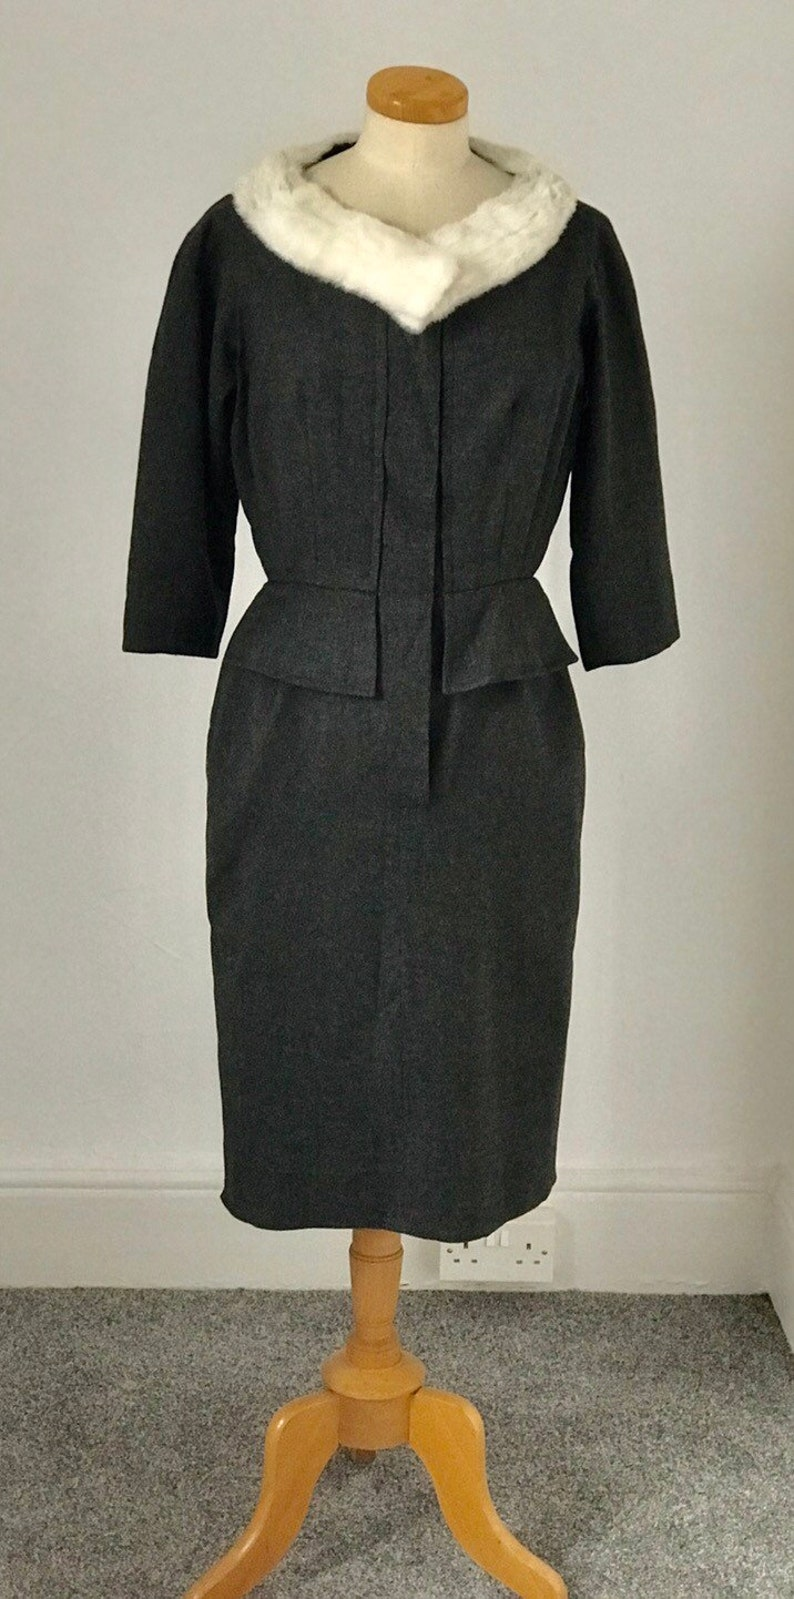 Vintage 50s Hardy Amies Day Dress Wiggle Grey Fine Worsted English Wool Sensual Couture 1950s Goodwood Unworn